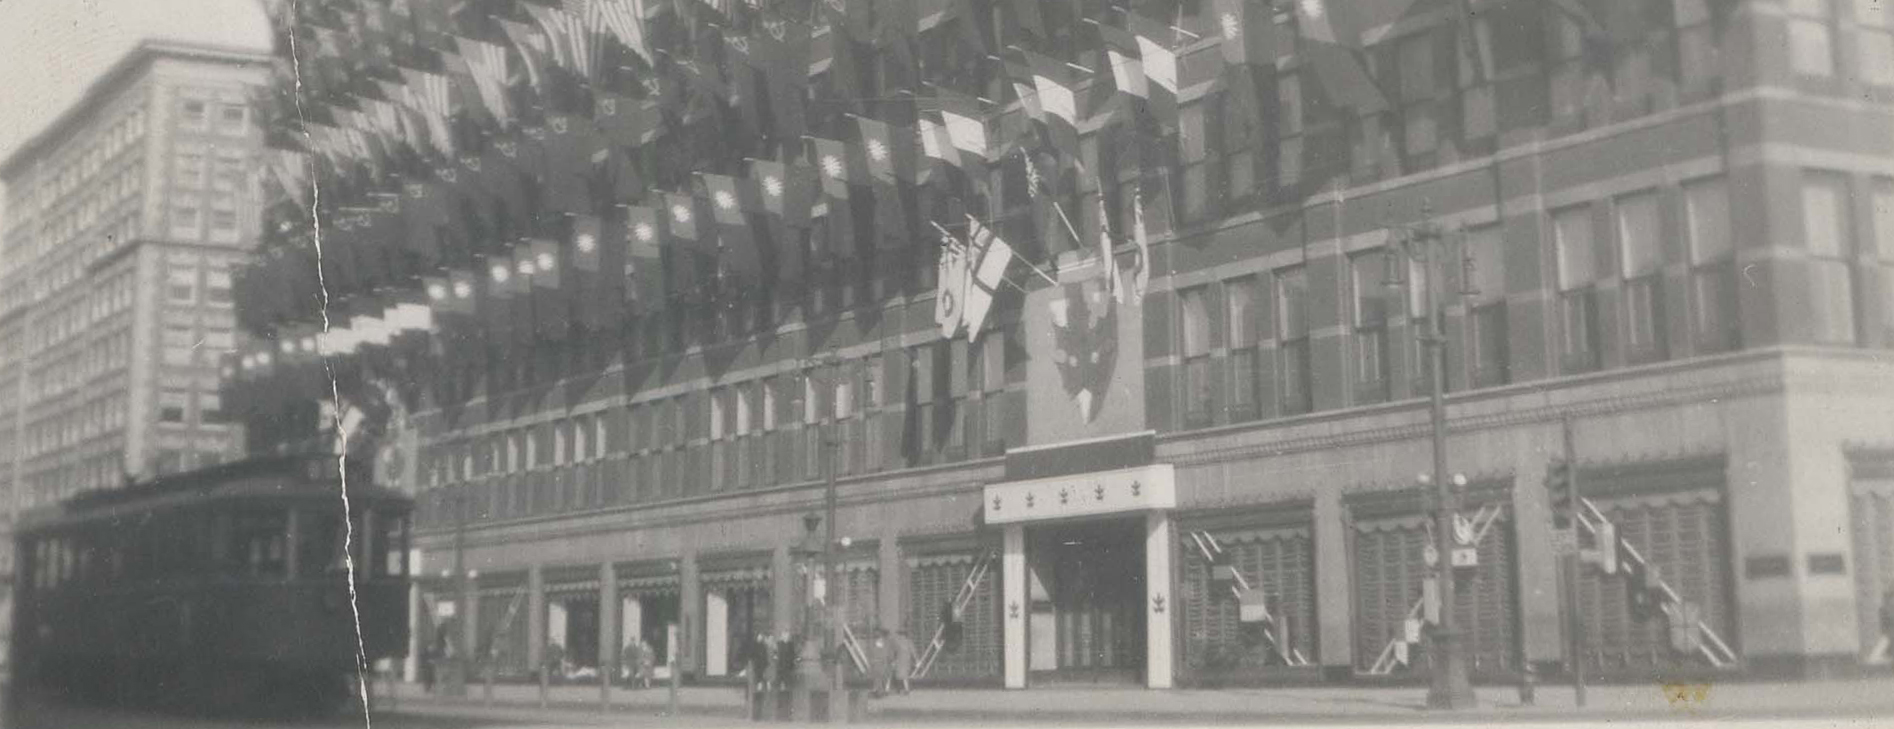 Eaton's department store on Portage Avenue adorned with Allied flags to celebrate Victory in Europe